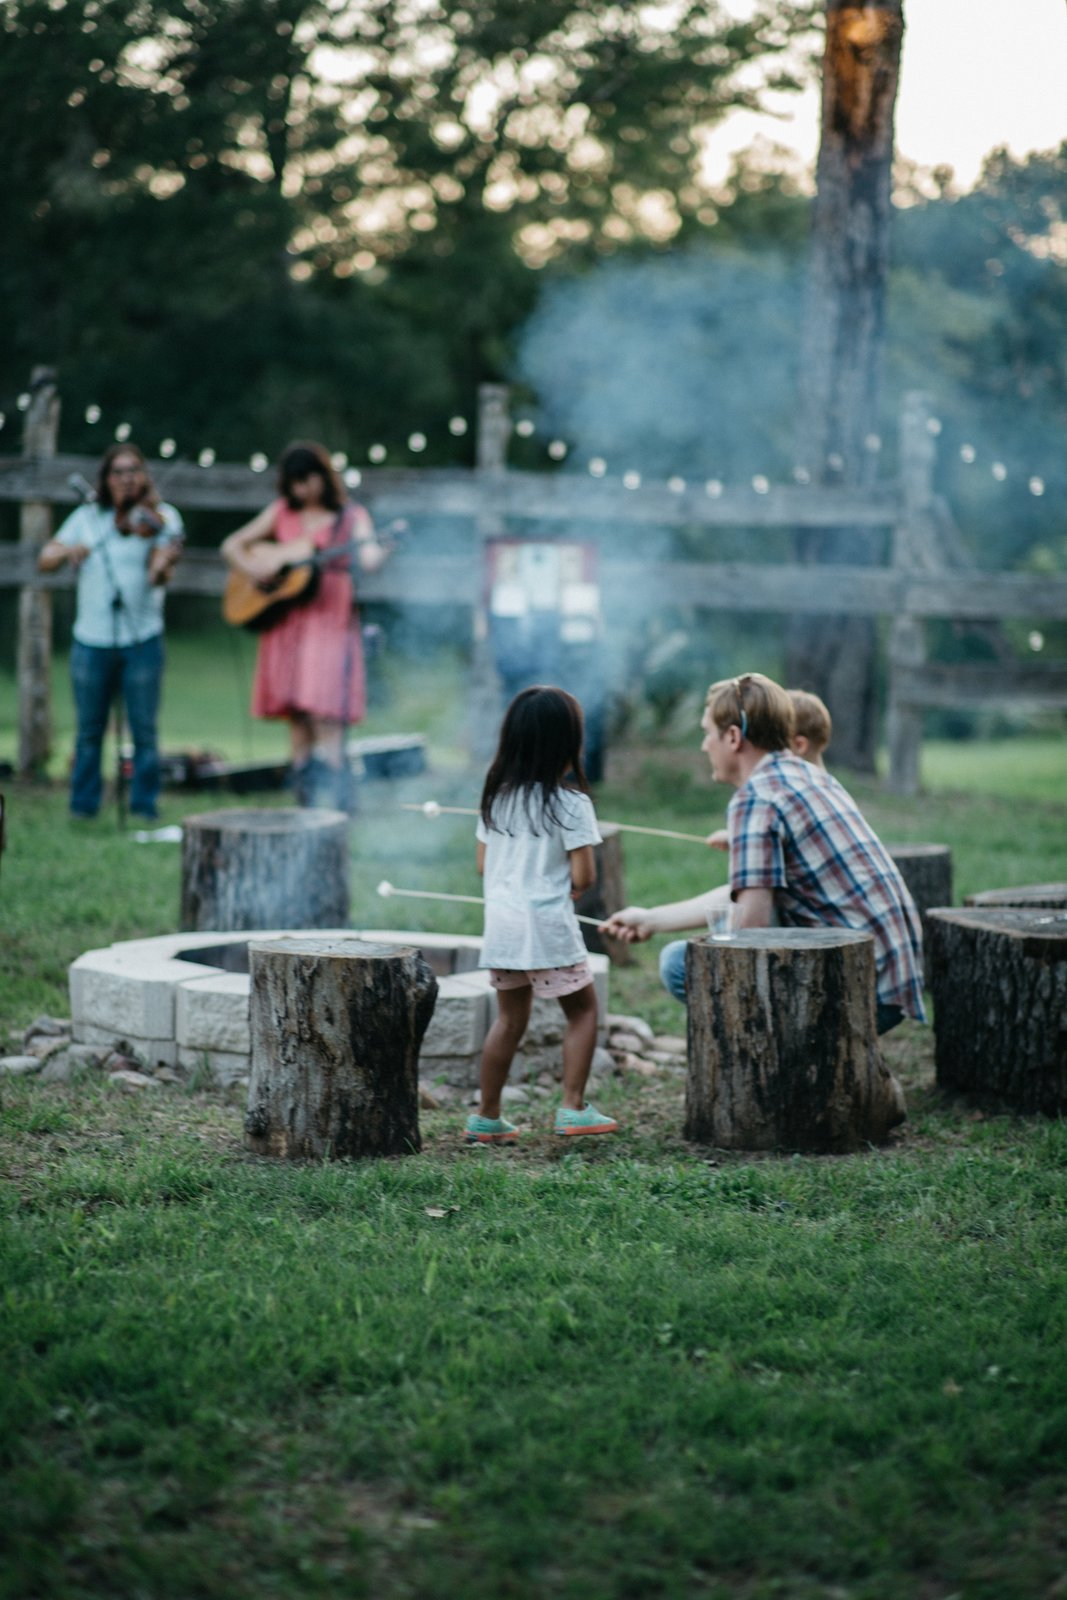 A corral fire pit brings everyone together, whether it's to roast marshmallows or listen to some acoustic tunes.  Saeby_Lyngsaa Strand by David Meffert from A Texas Camping Spot Complete With Yurts and Miniature Donkeys